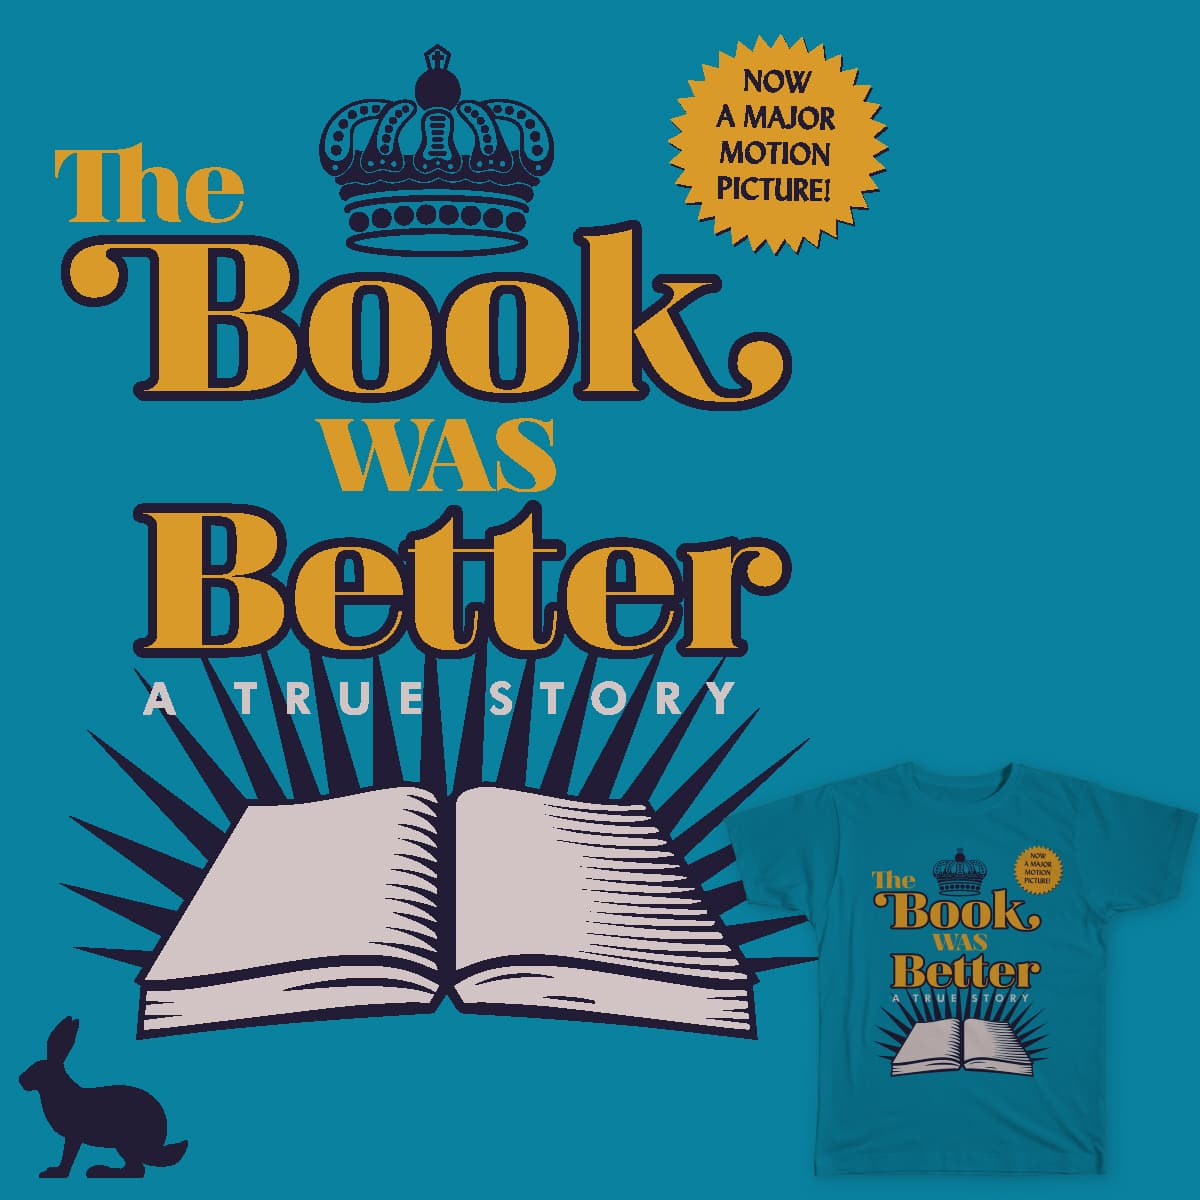 The Book Was Better by ORabbit Designs on Threadless